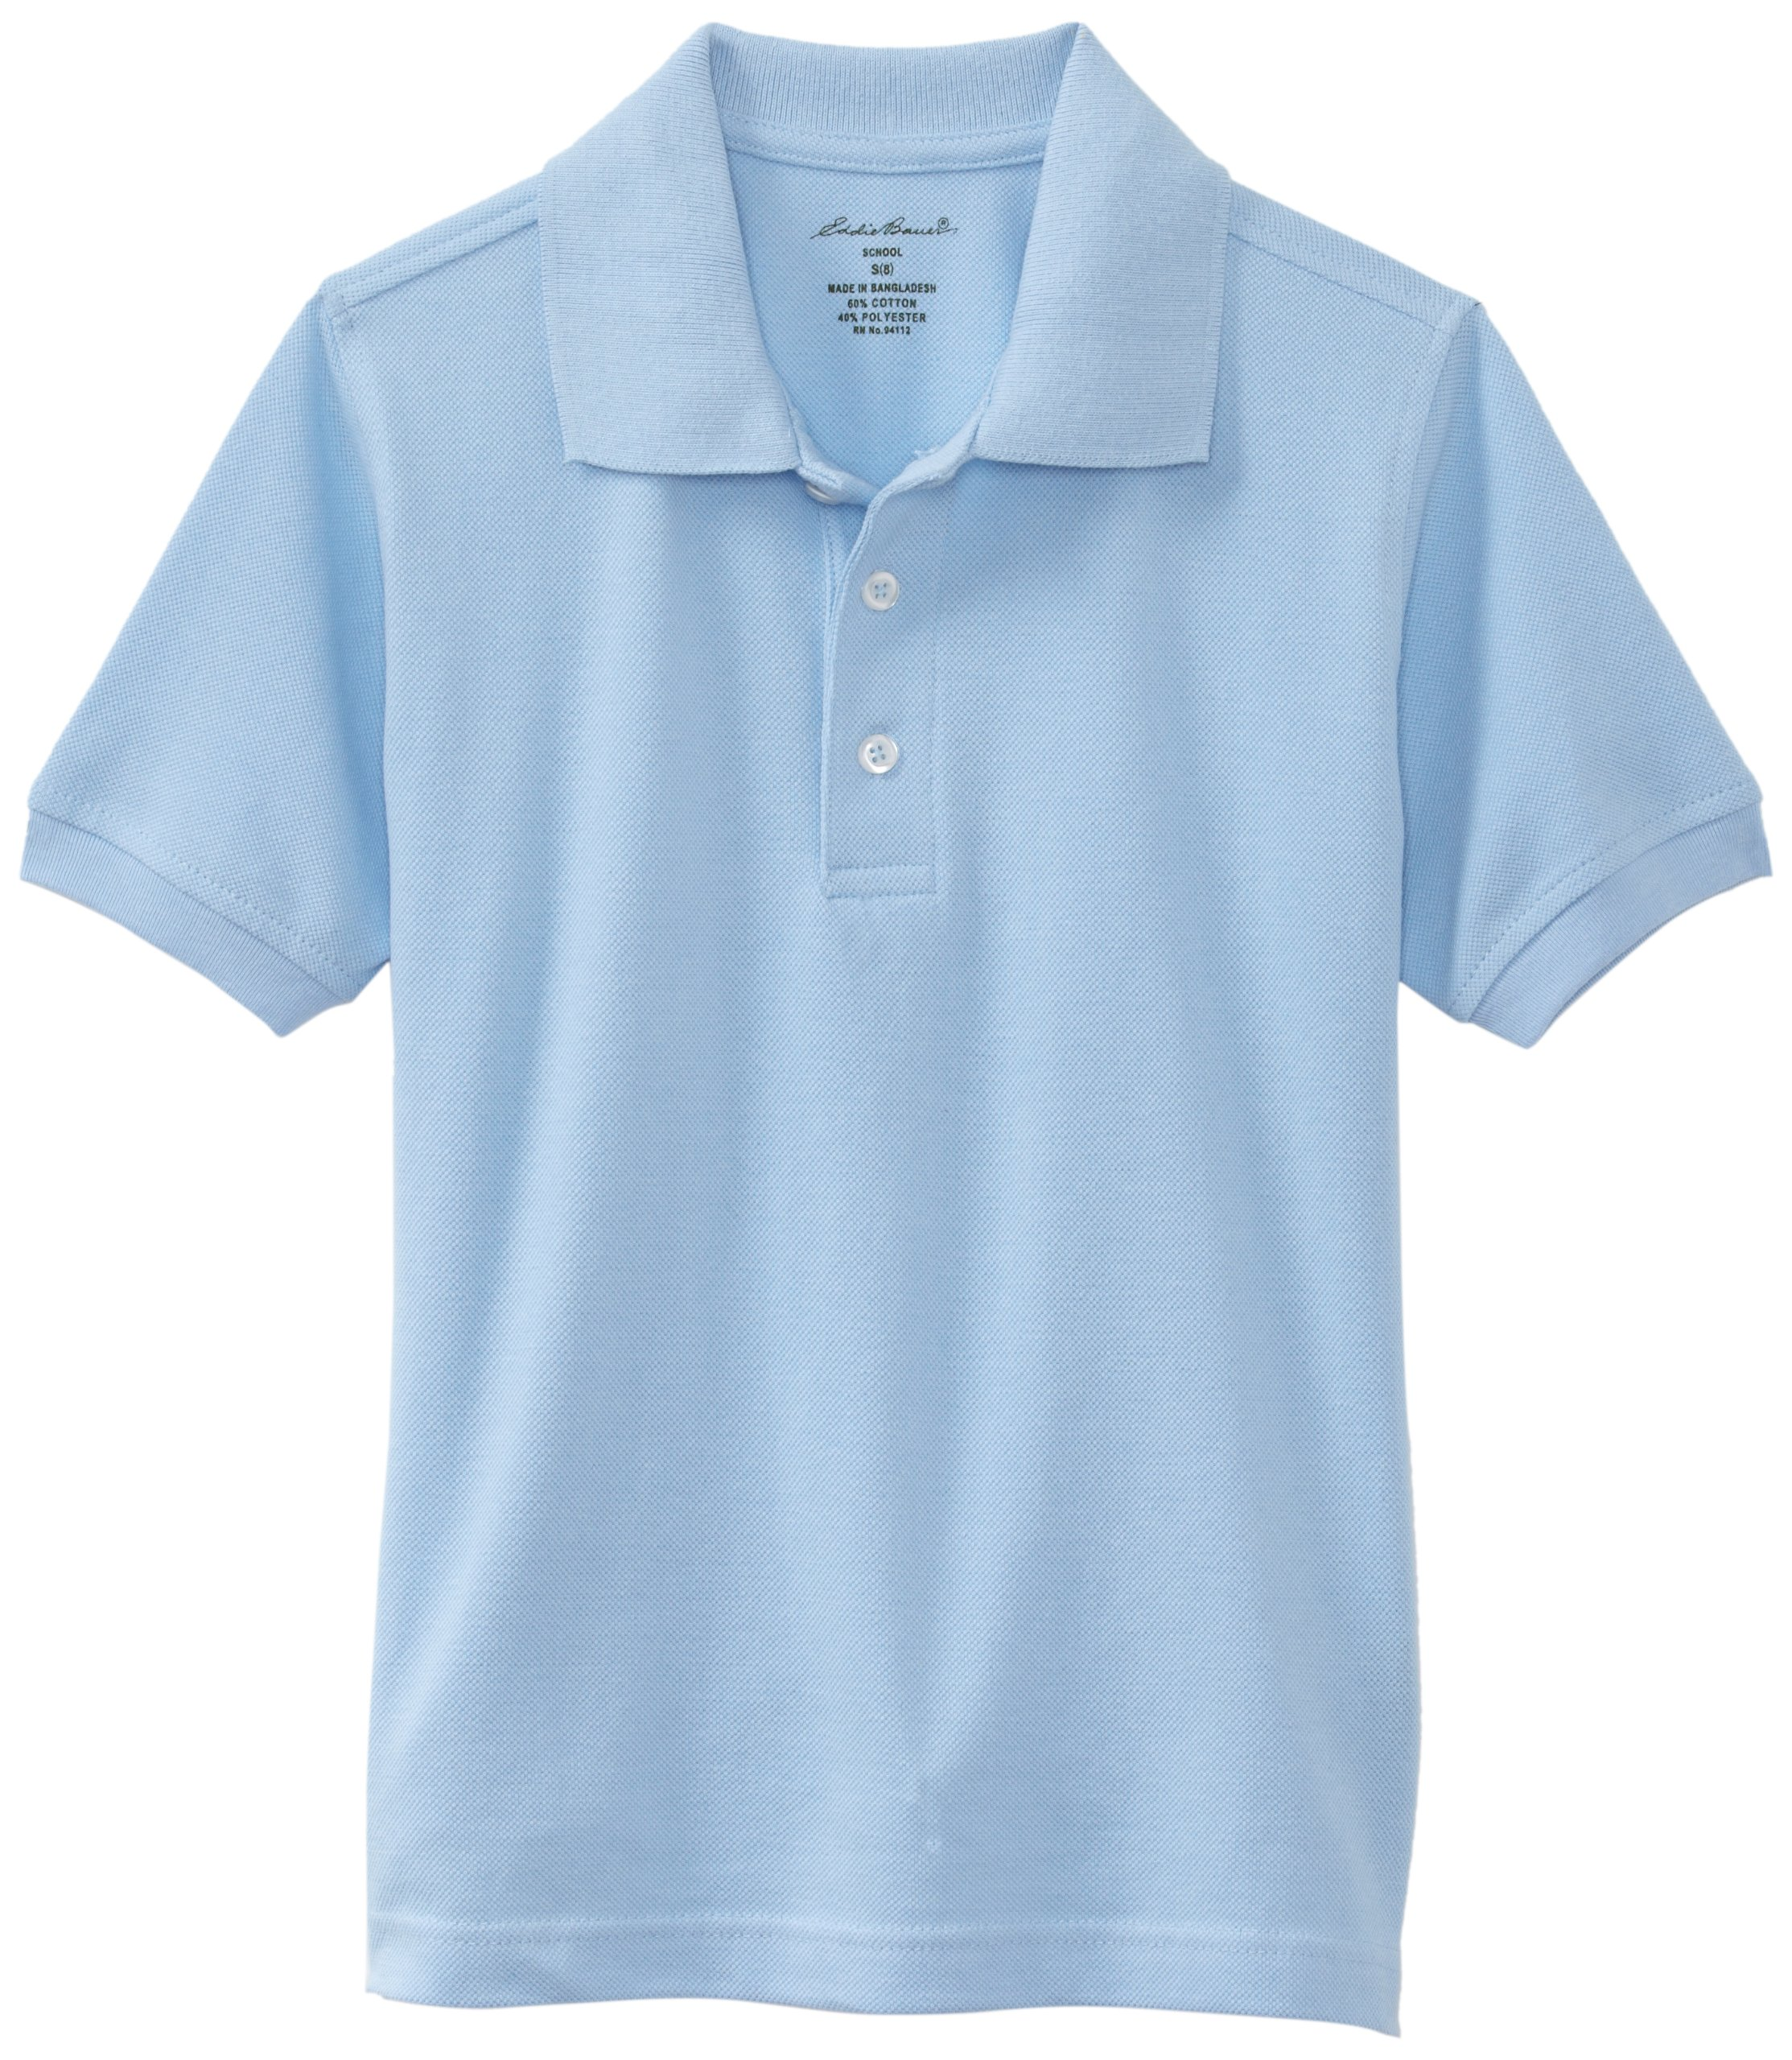 09a381058 Galleon - Eddie Bauer Boys  Short Or Long Sleeve Polo Shirt (More Styles  Available)